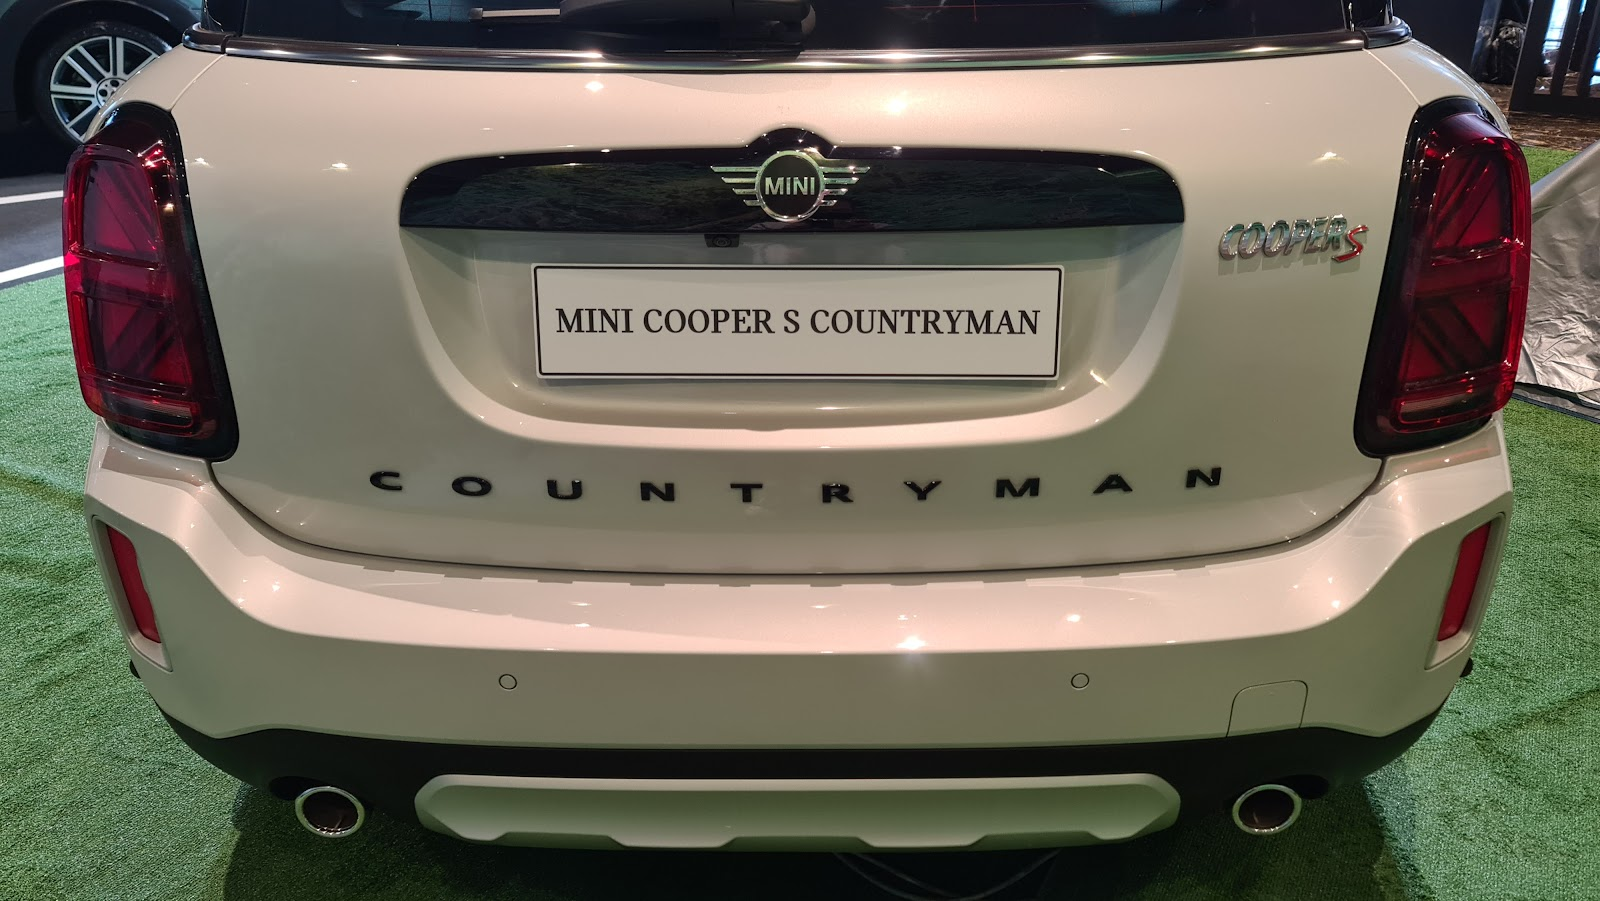 2021 MINI Cooper S Countryman Rear View